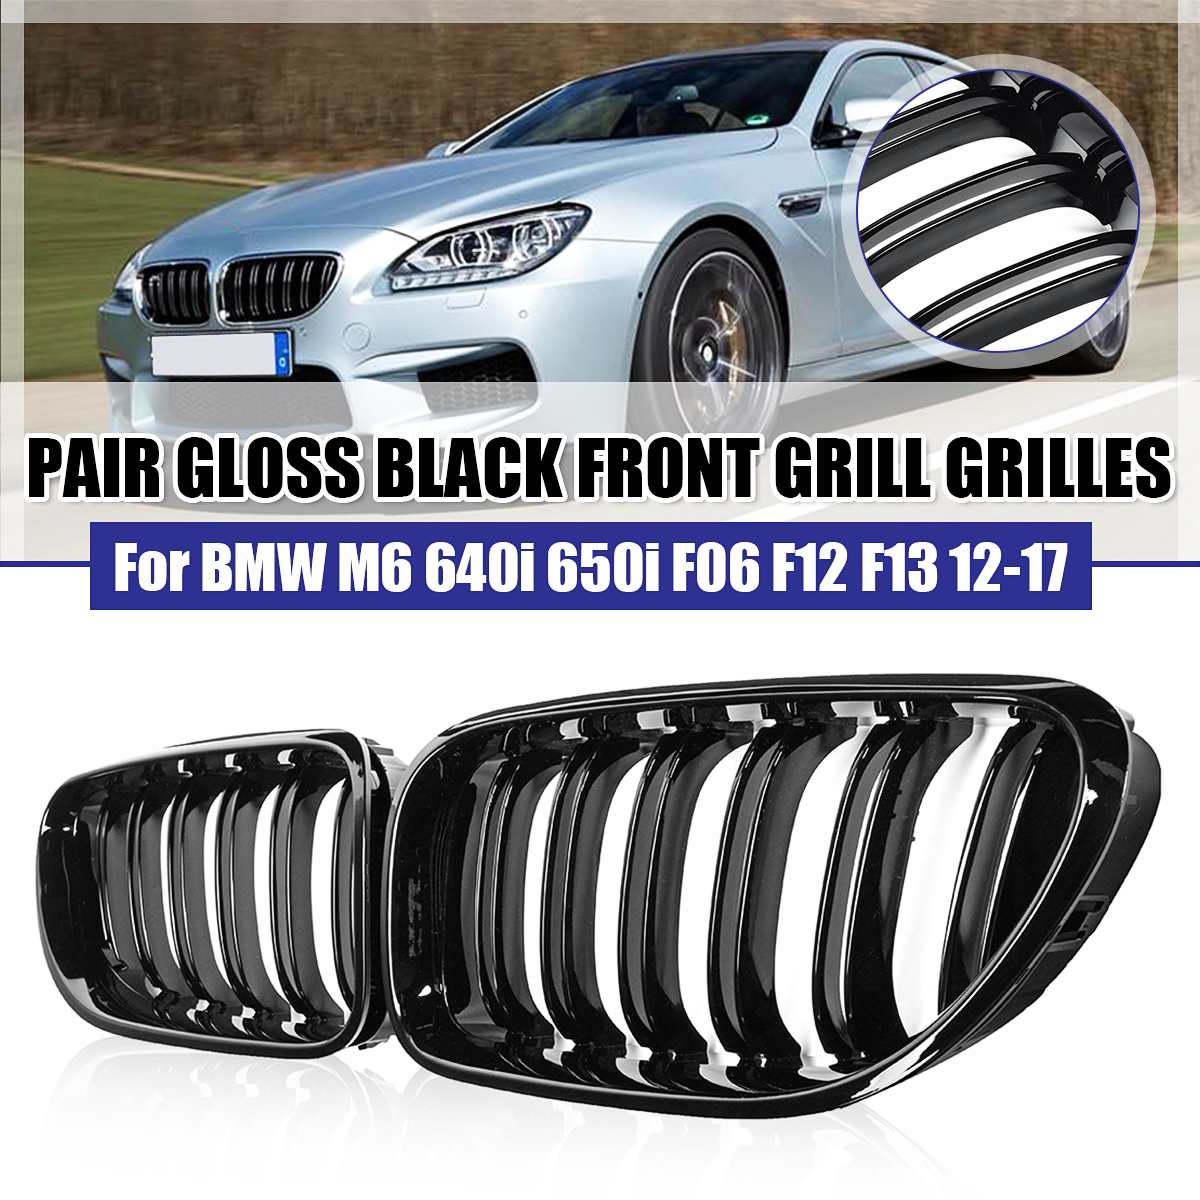 Pair ABS Gloss Black 2-Slat Kidney Racing Grille For BMW M6 640i 650i F06 F12 F13 2012 2013 2014 2015 2016 2017 Car Accessories image